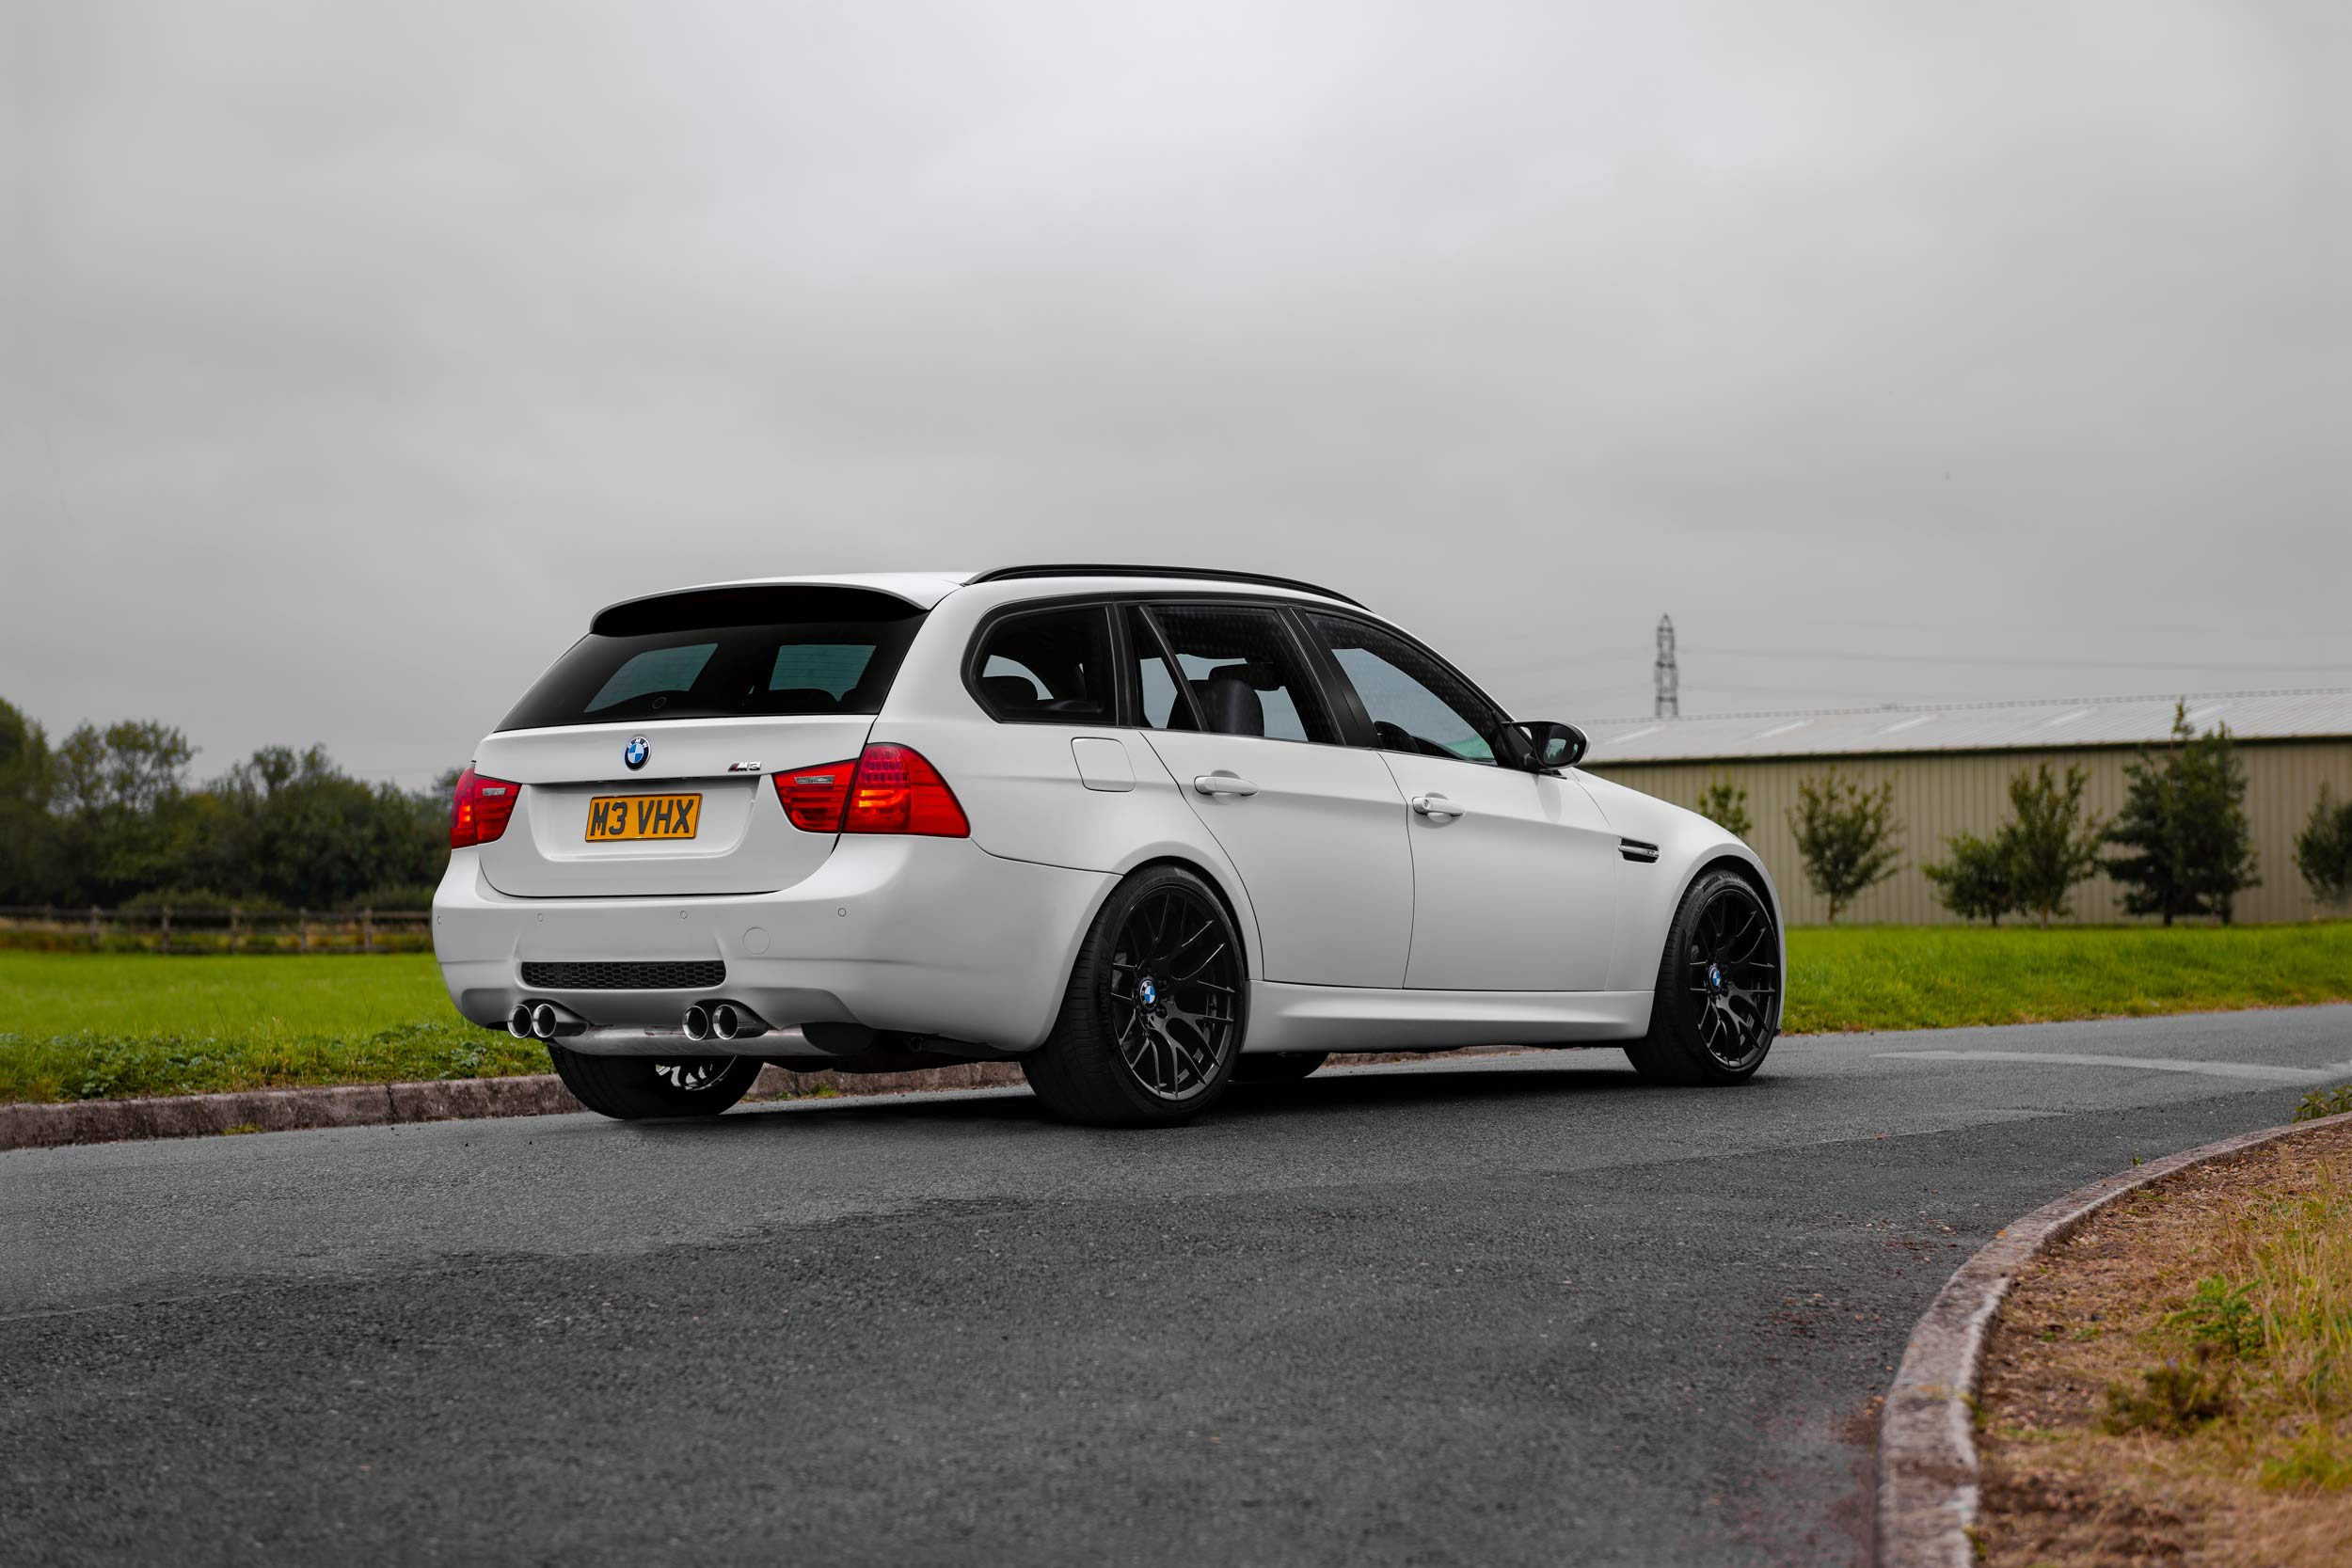 Wipdesigns Automotive Photographer BMW M3 Touring Rear Right After